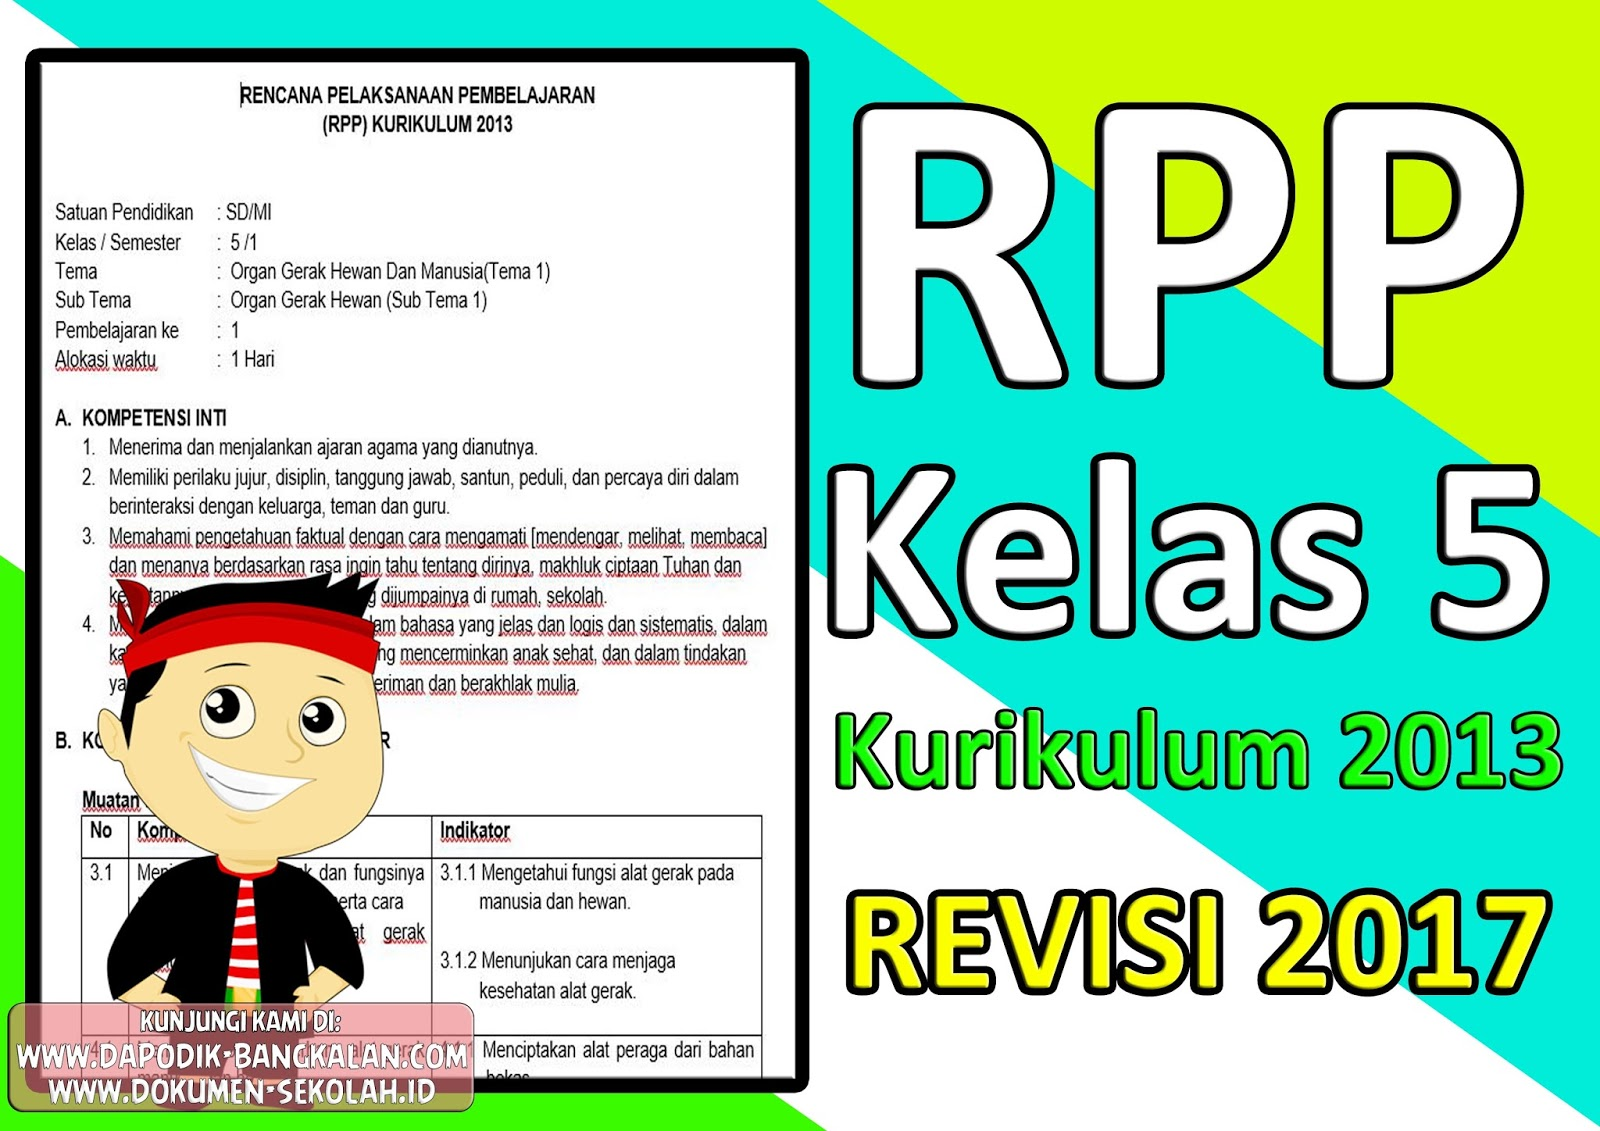 Download Rpp Kelas 5 Kurikulum 2013 Revisi 2017